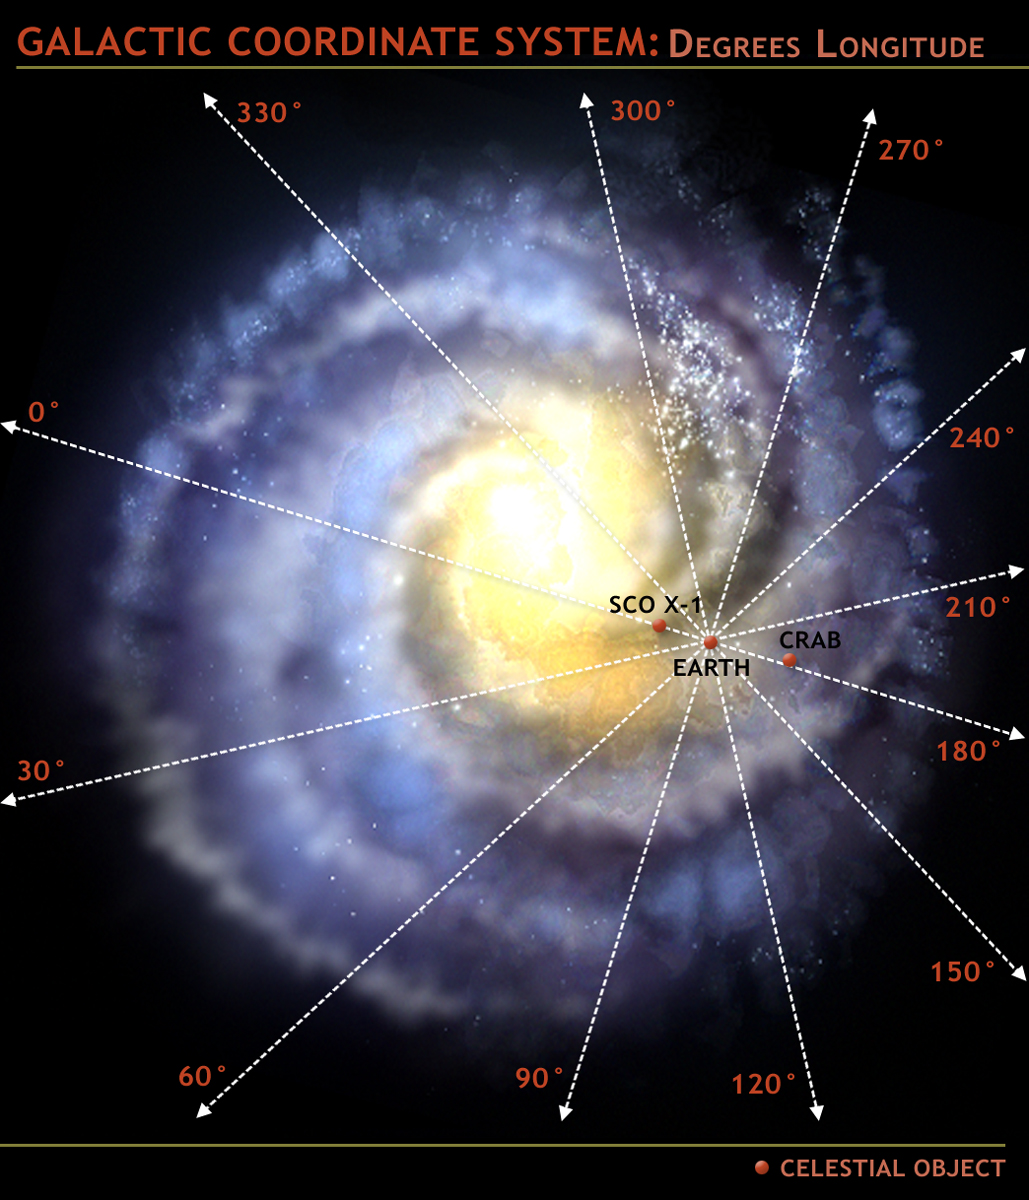 galactic coordinates of various celestial objects